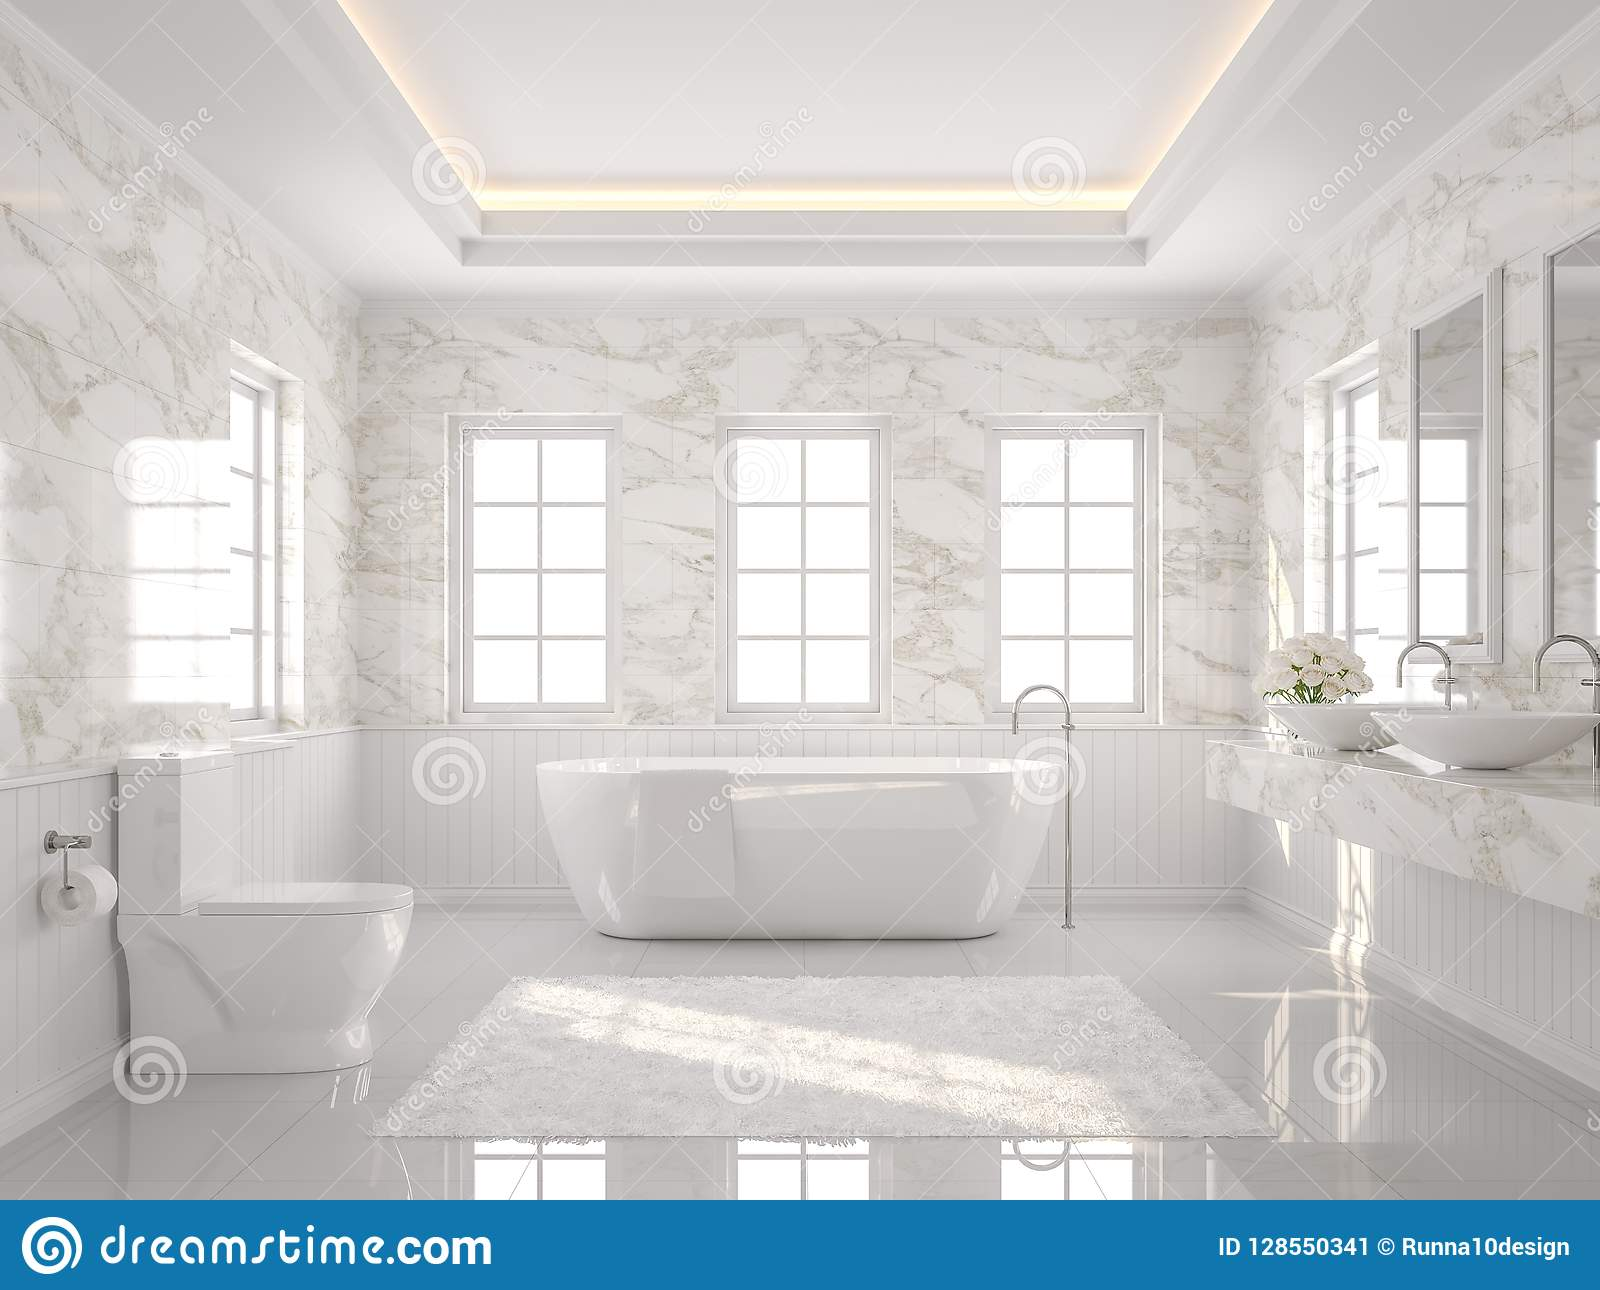 marvellous modern style hotel room bathroom 3d house free | Luxury White Bathroom With Marble Wall 3d Render Stock ...